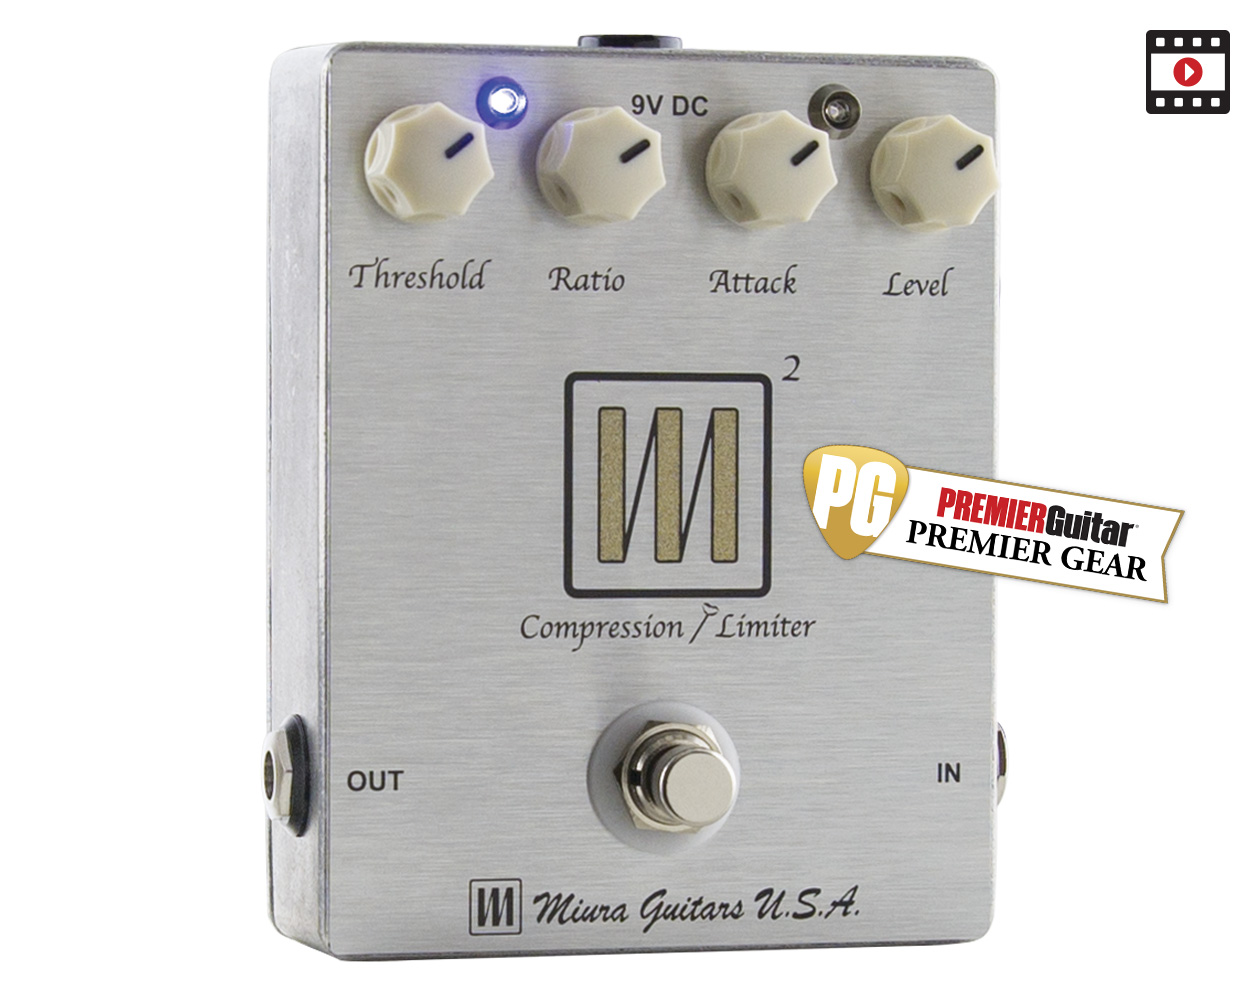 M2 Compression / Limiter won Premier Gear